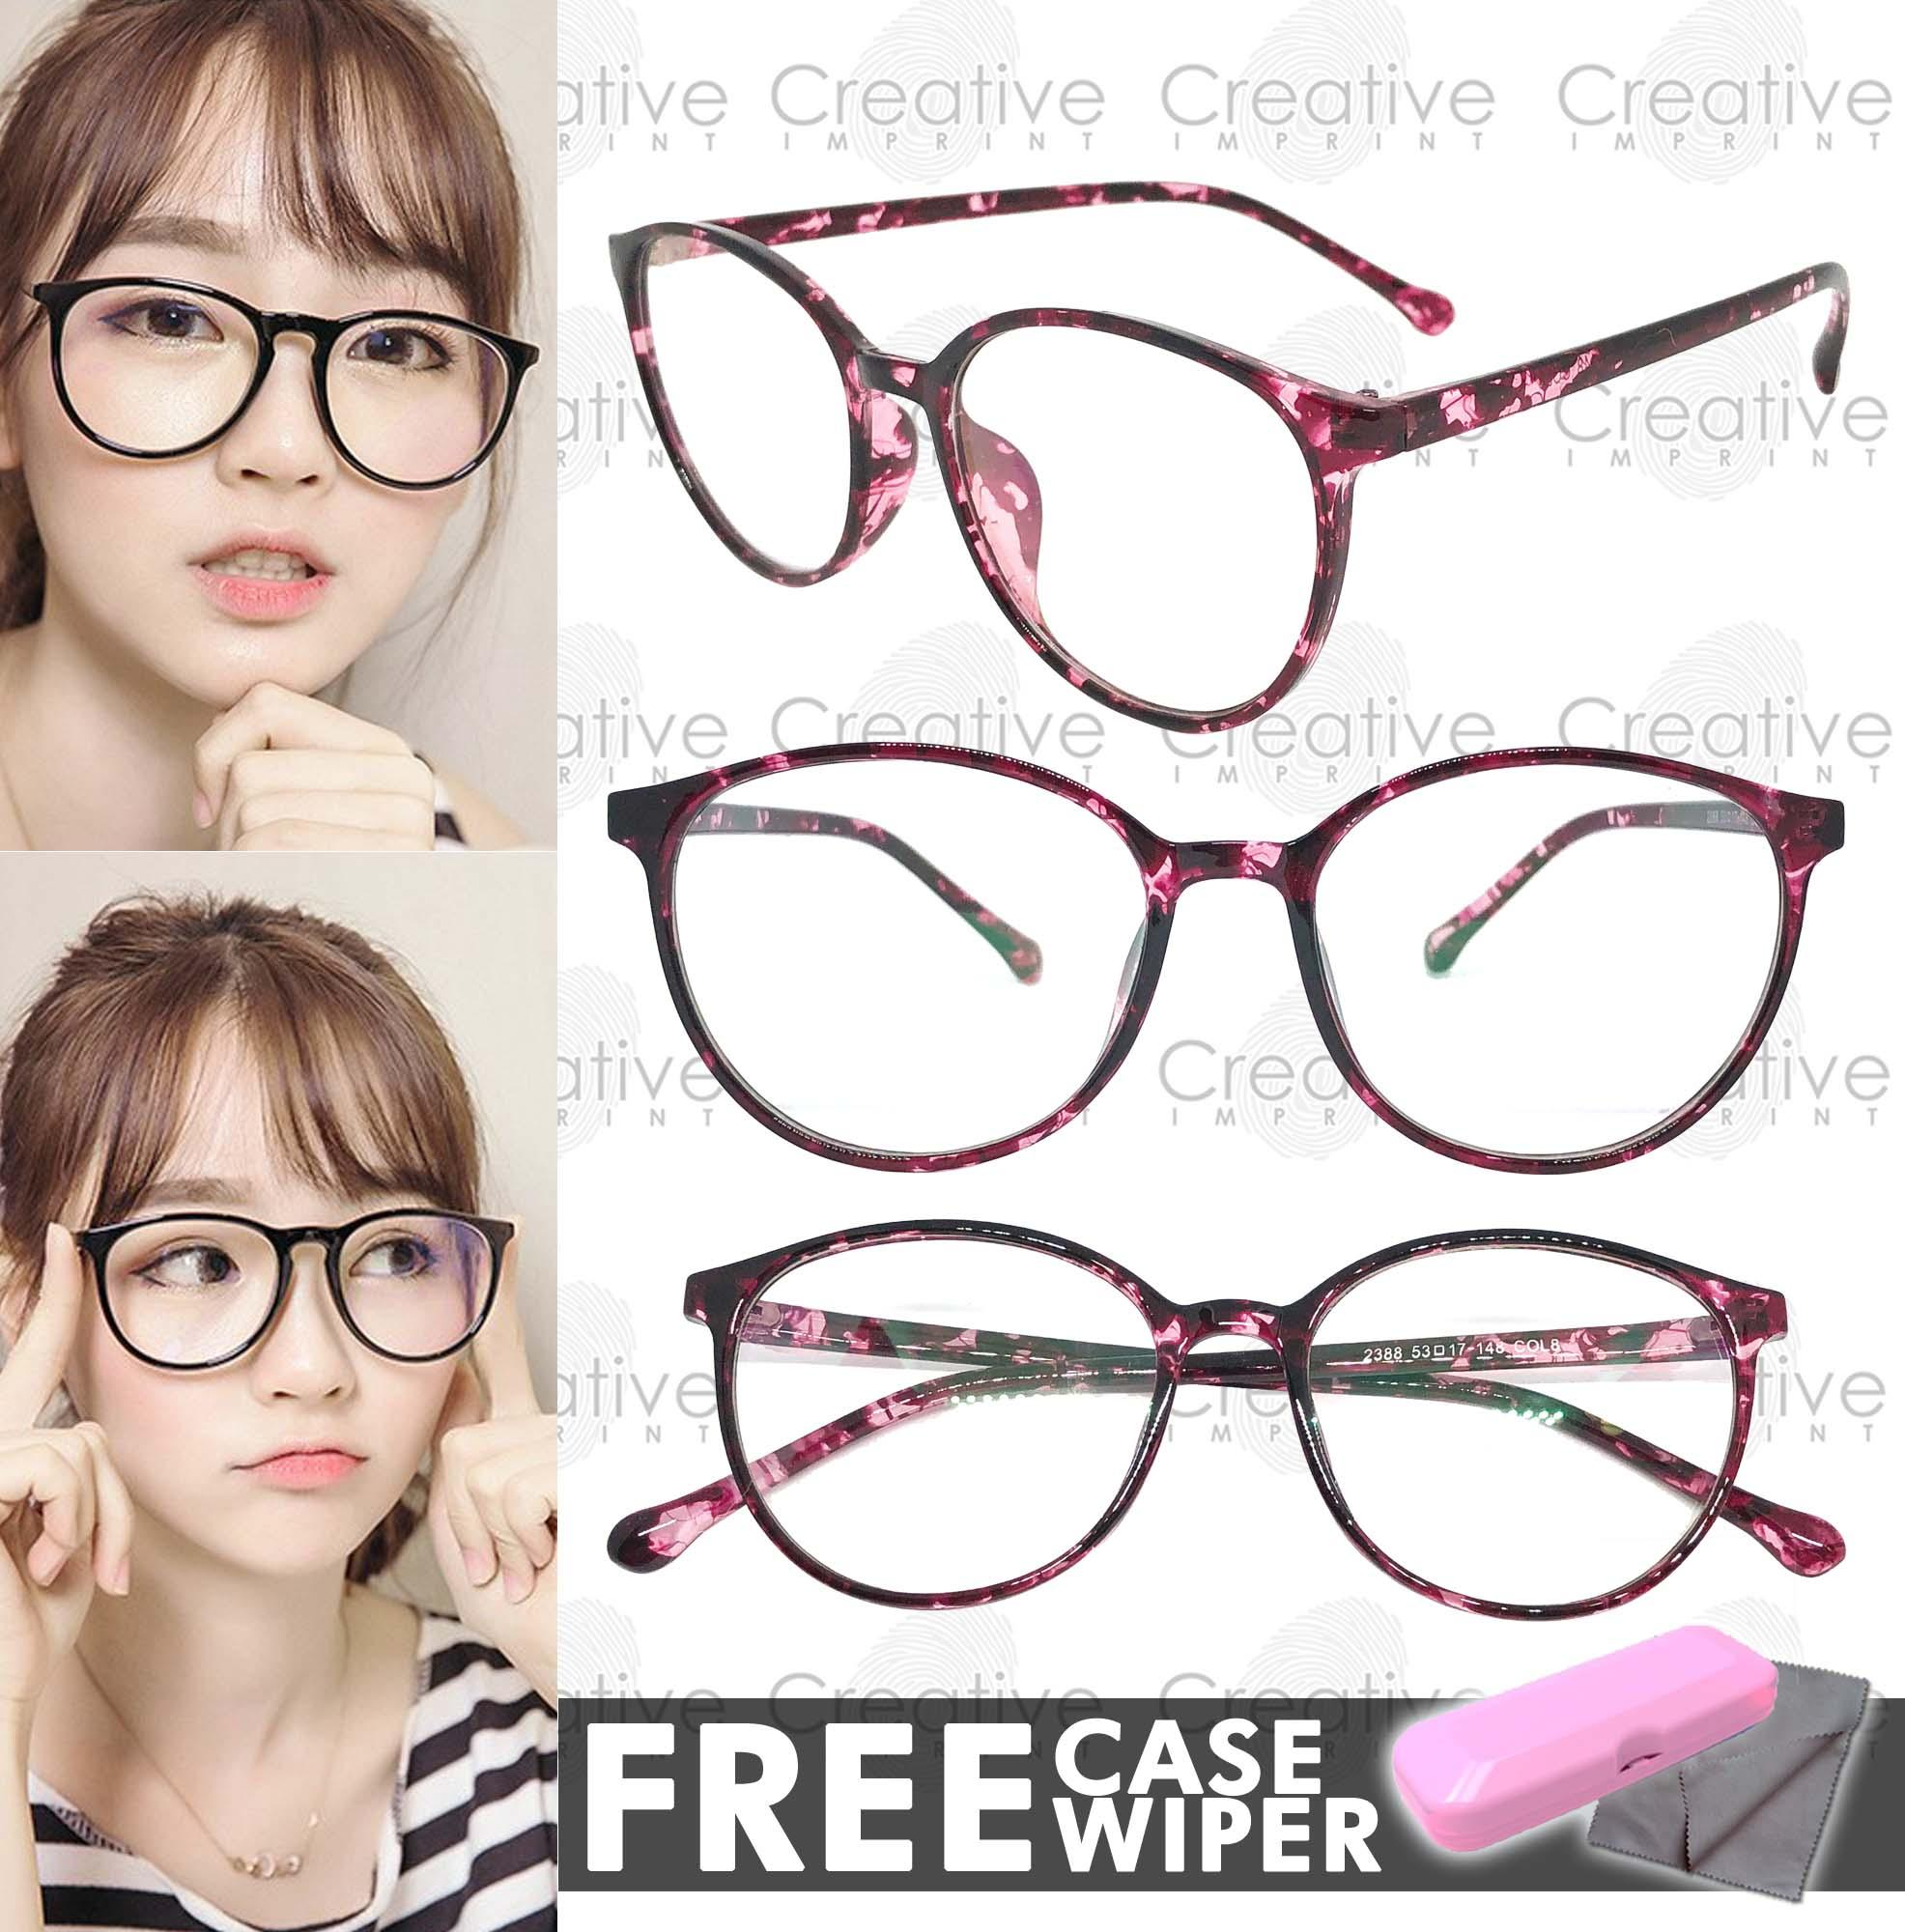 9d4c480e94e Creative Imprint Eyeglasses Anti-Radiation Lens ( 05 Animal Print Purple)  Anti-